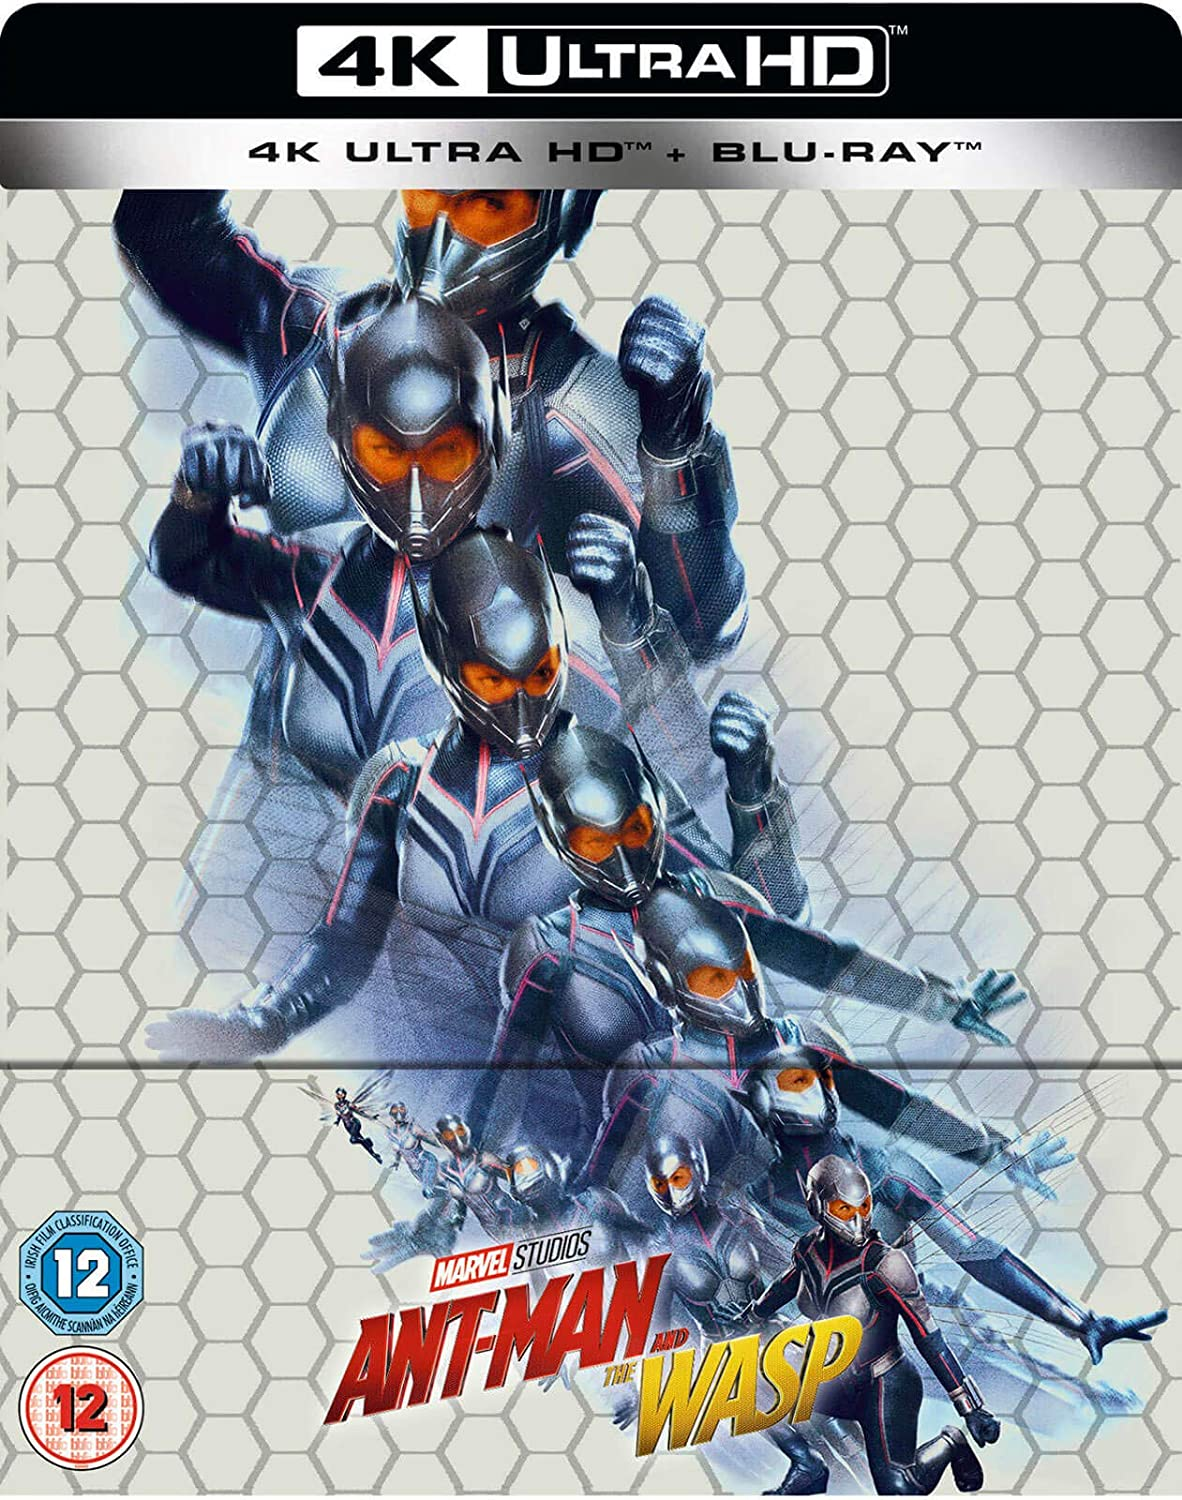 Amazon.com: Ant-Man and the Wasp - 4K Ultra HD (Includes Standard Blu Ray) Steelbook [Region Free]: Movies & TV